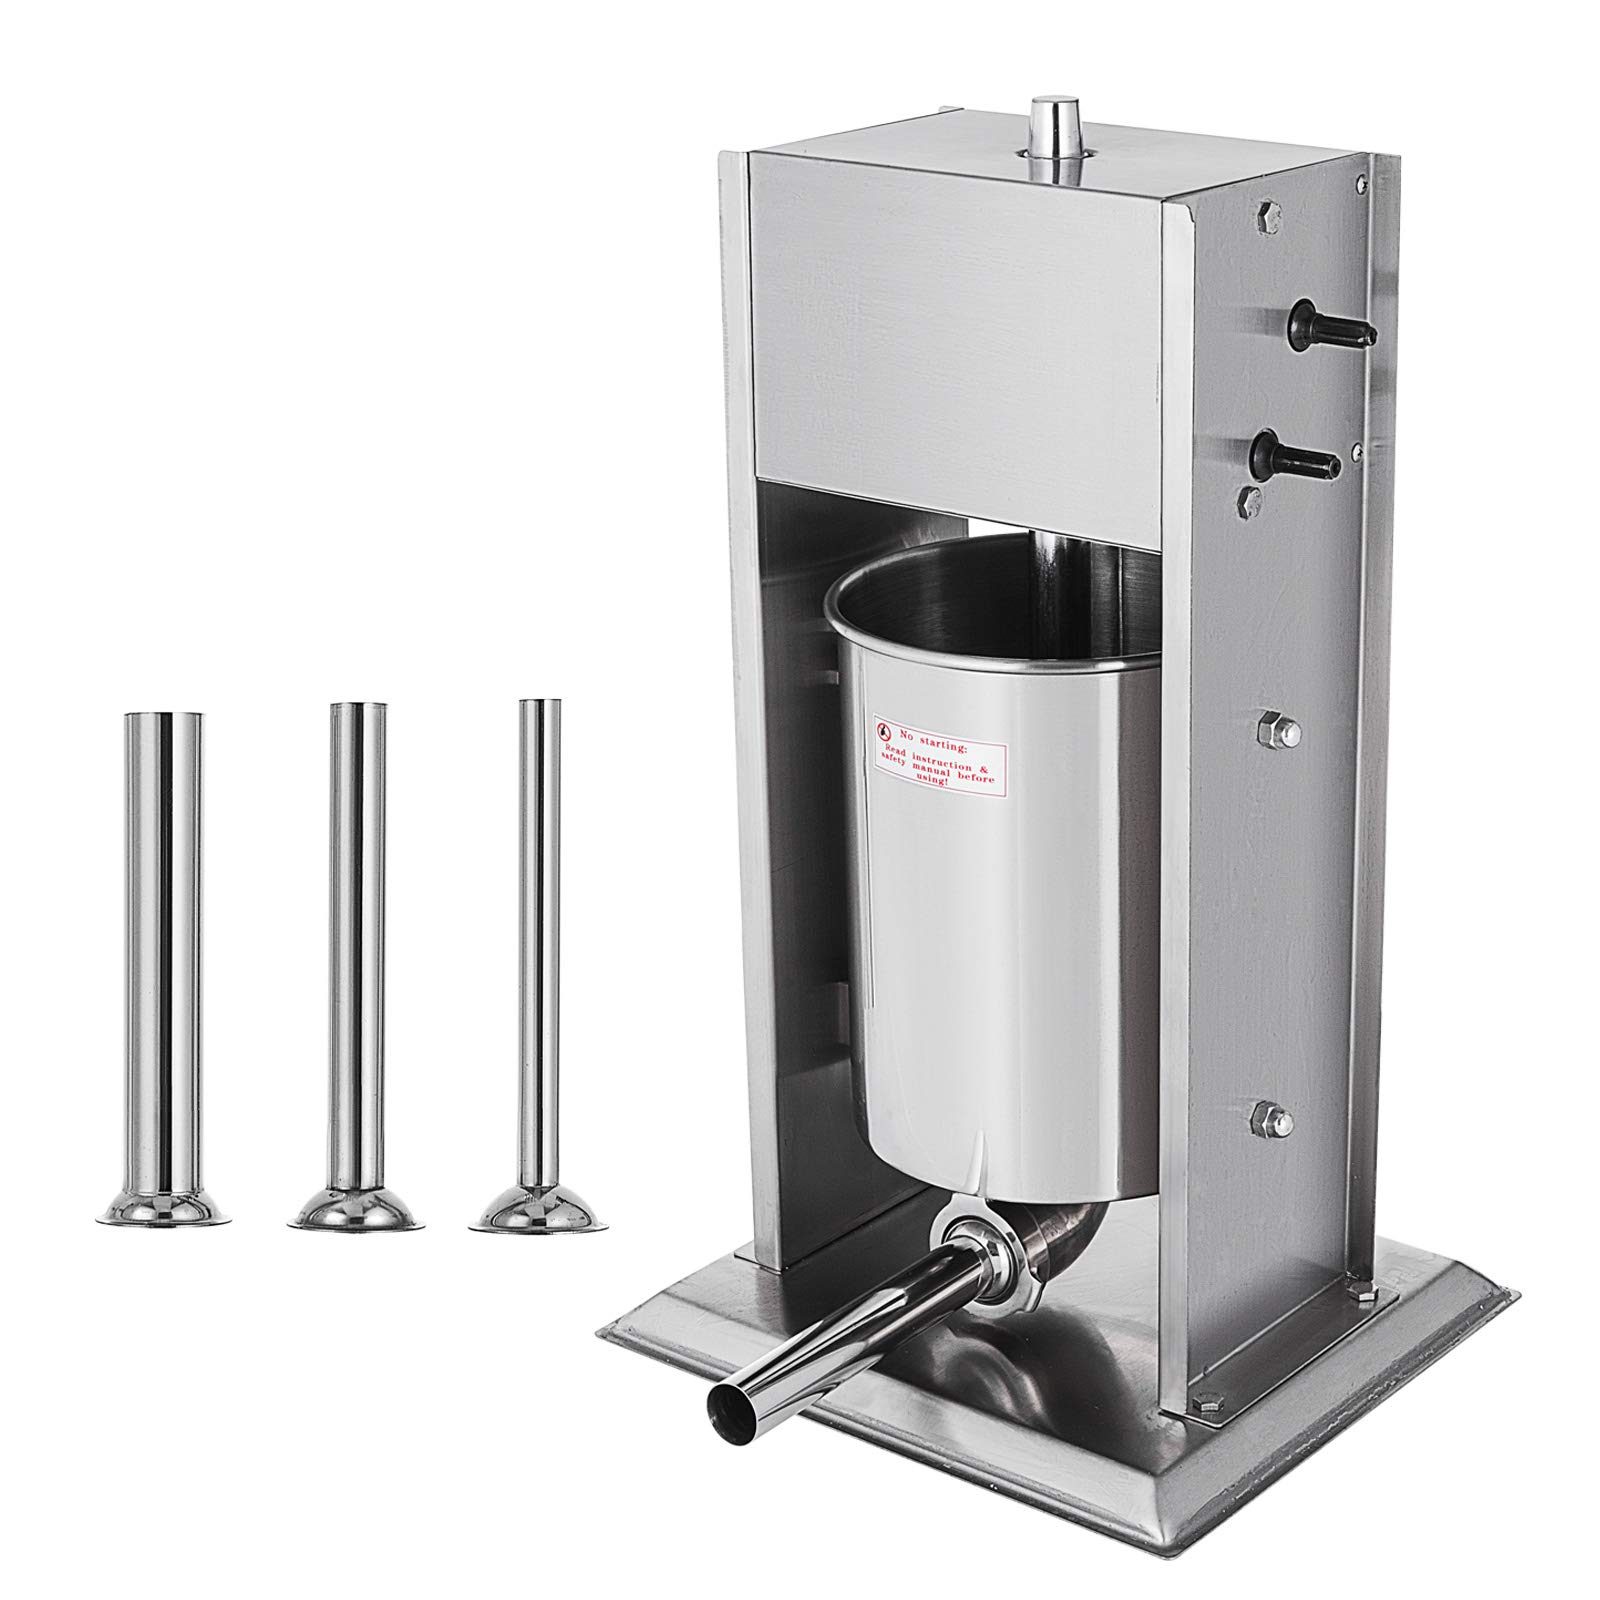 Happybuy Sausage 10L 22LB Vertical Stainless Steel Two Speed Commercial Grade Restaurant Meat Filler Manual, Silver by Happybuy